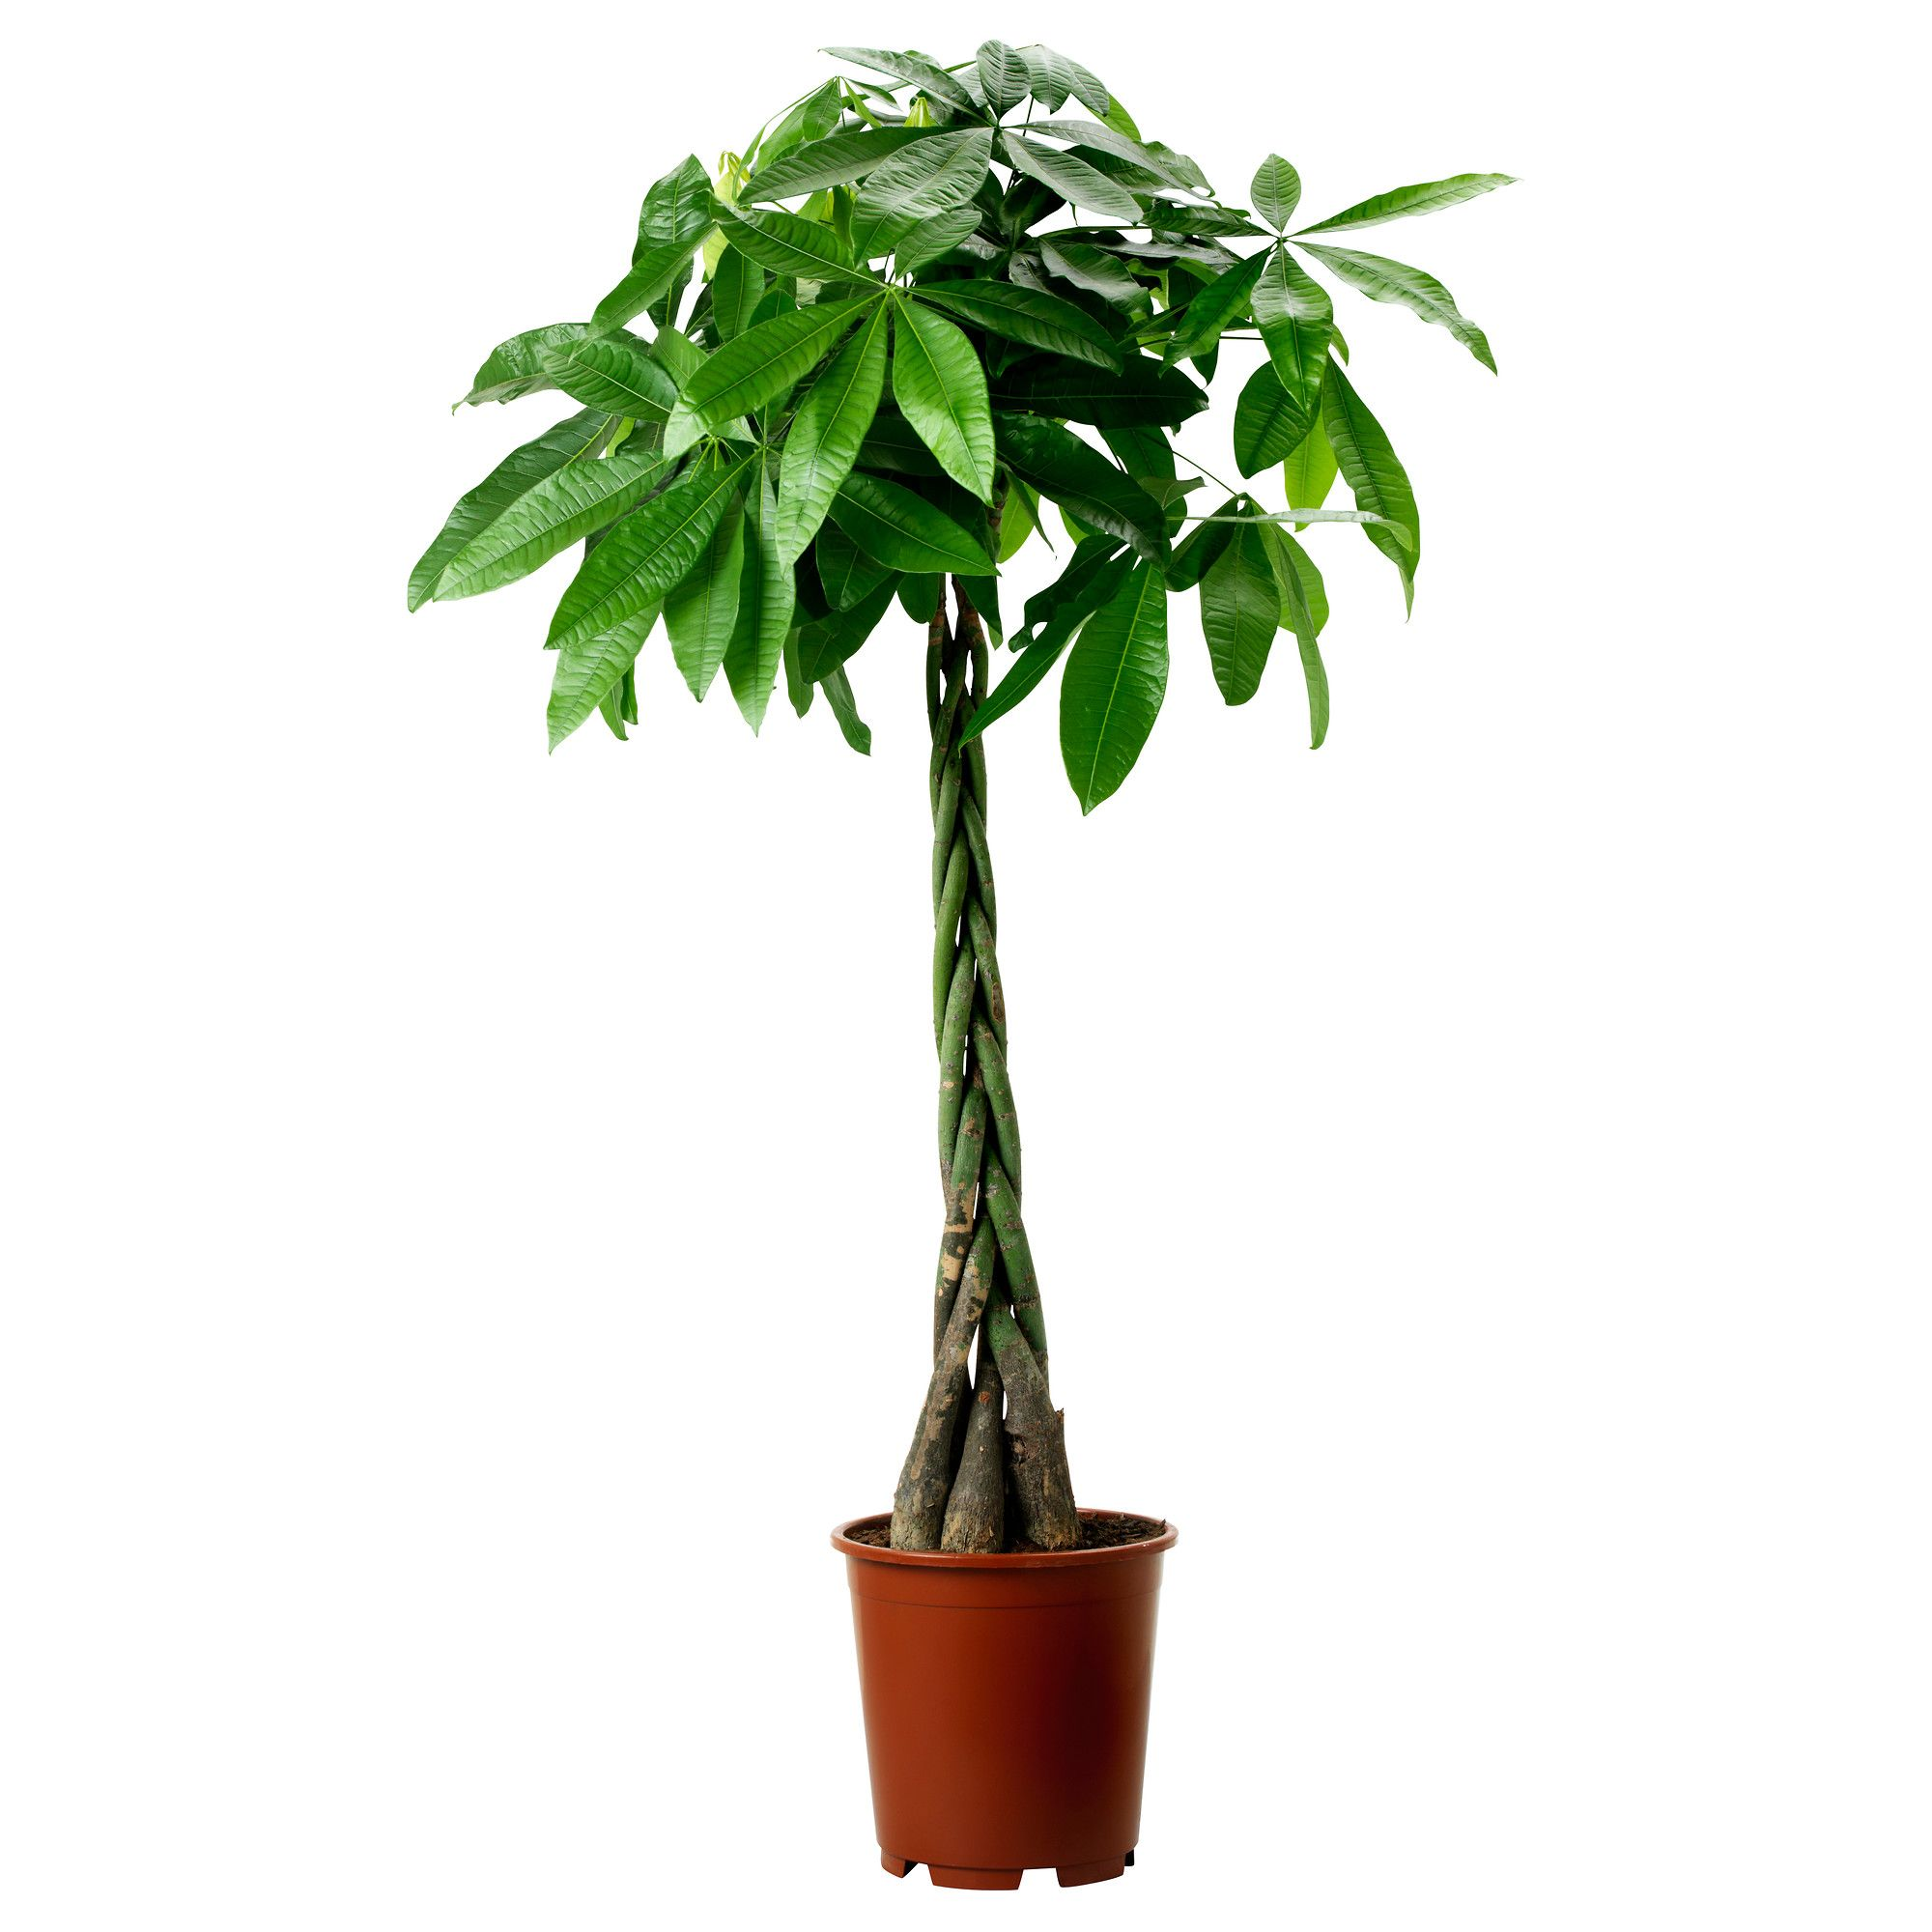 IKEA PACHIRA AQUATICA Potted Plant Guinea Chestnut 27 Cm Decorate Your Home With Plants Combined A Pot To Suit Style